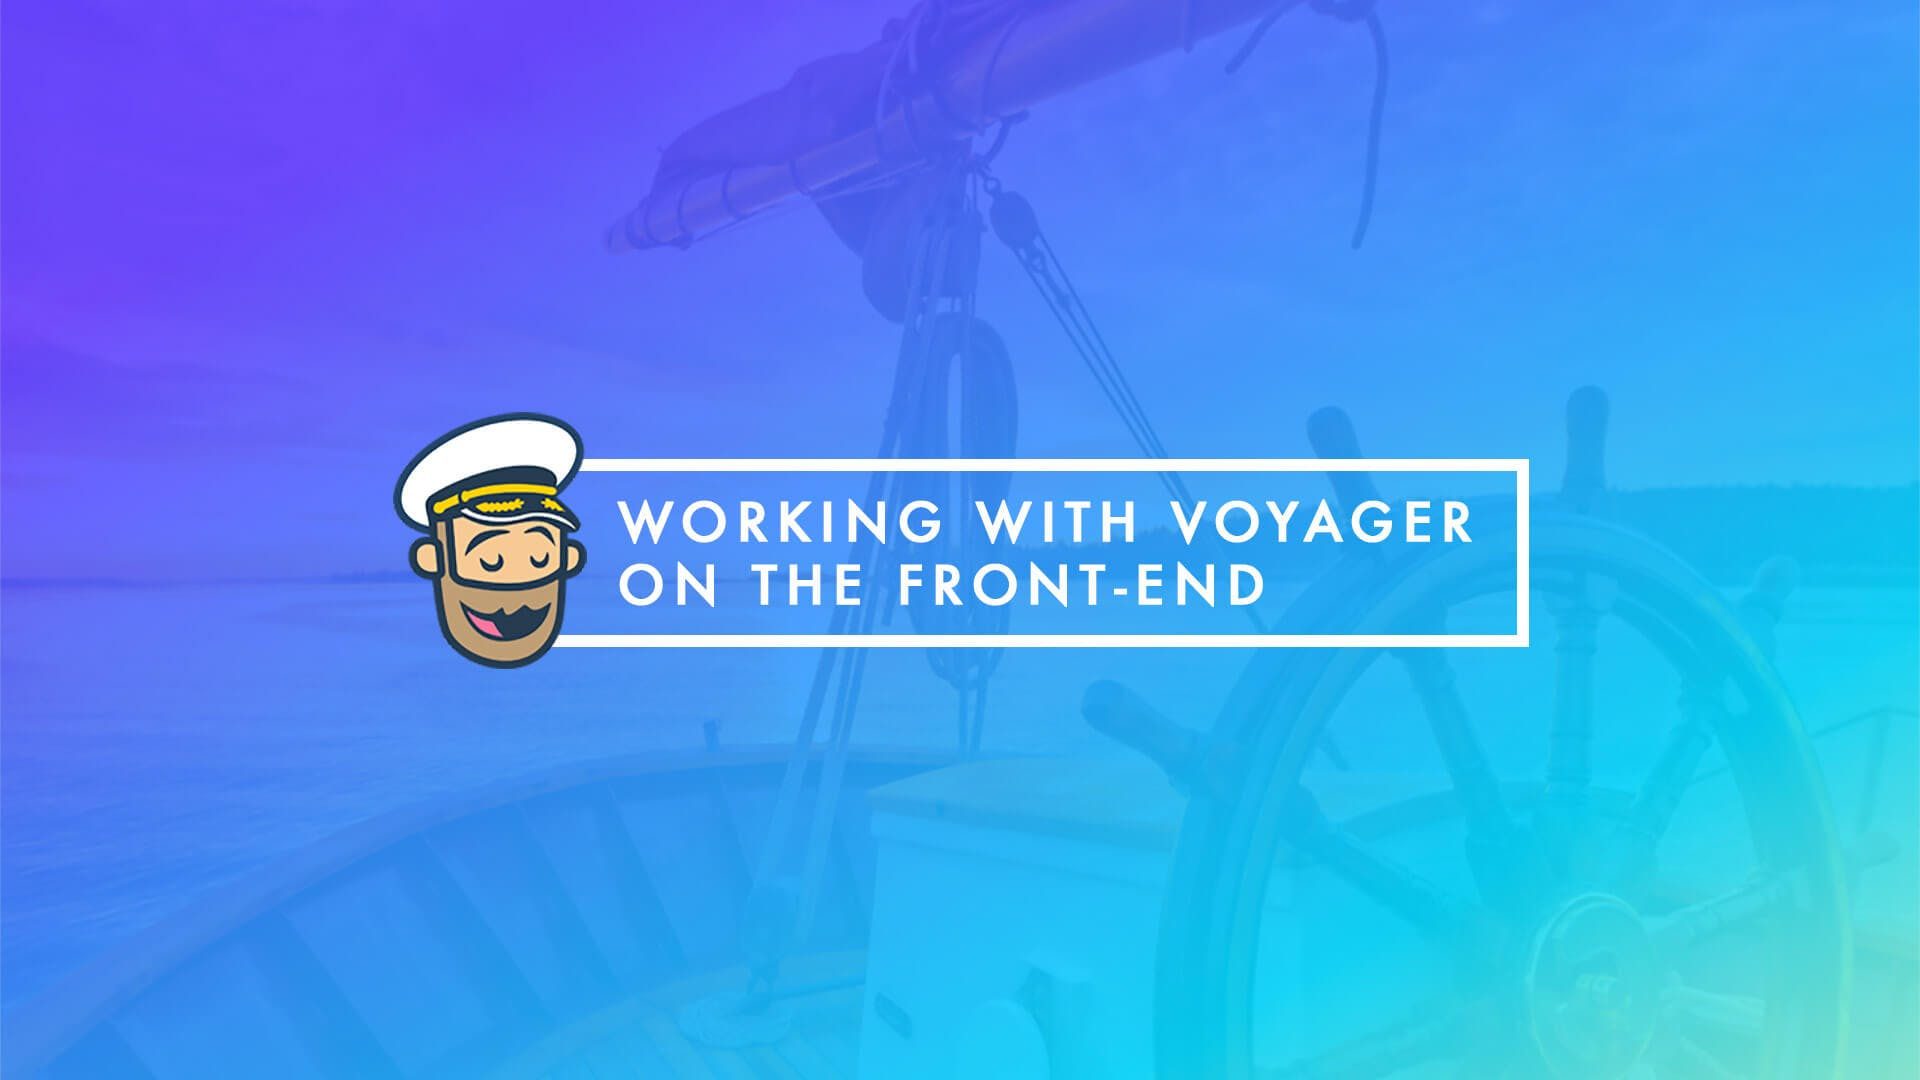 Working with Voyager on the Front-end